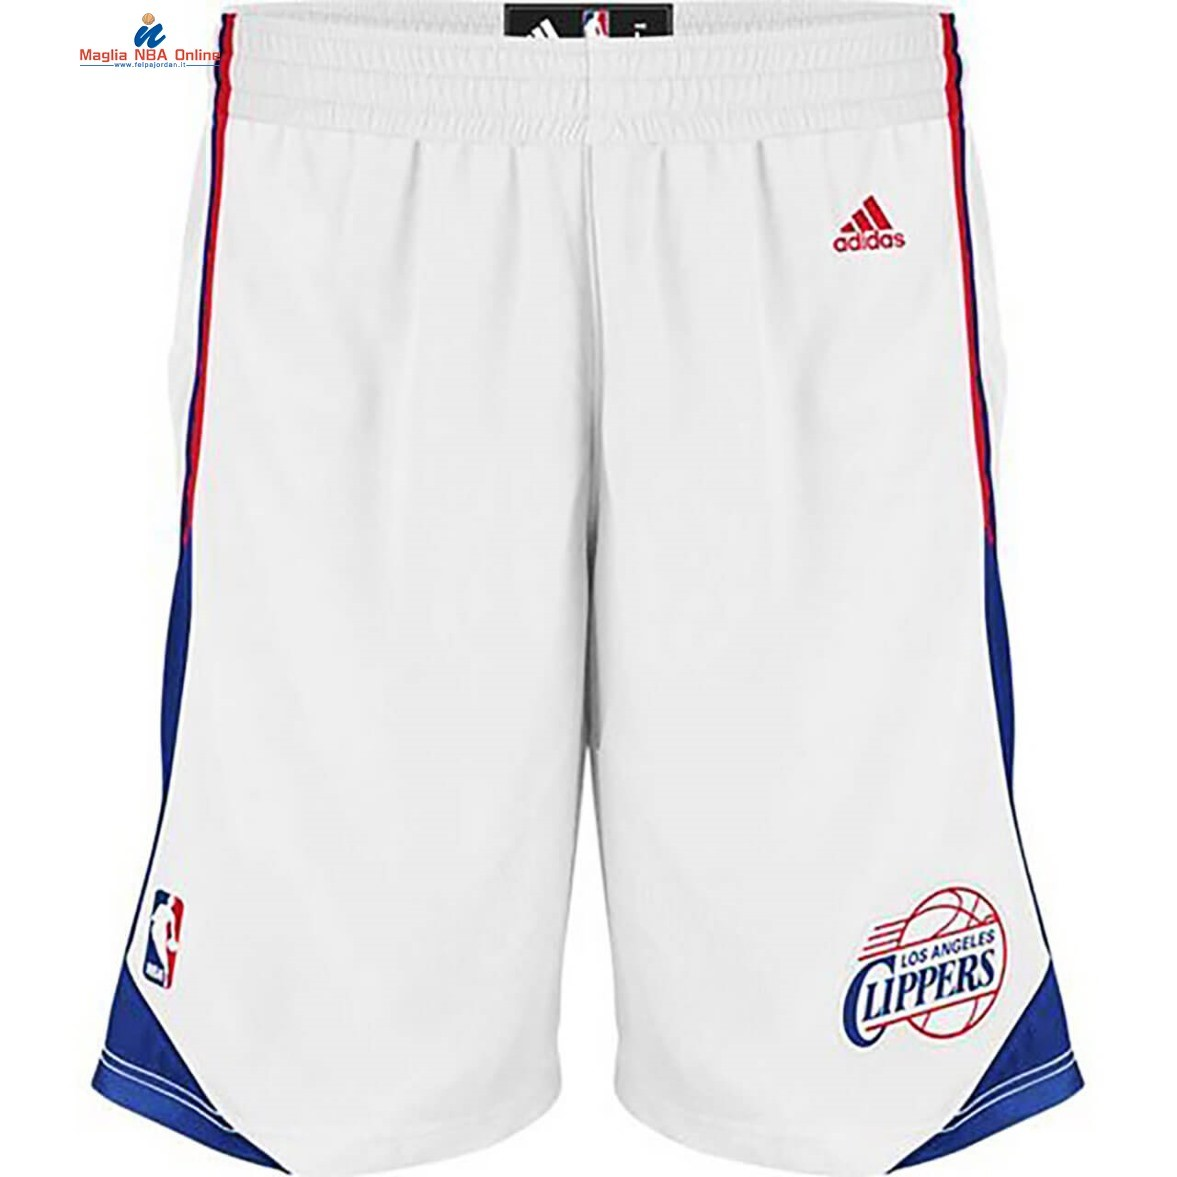 Pantaloni Basket Los Angeles Clippers Bianco 2020 Acquista